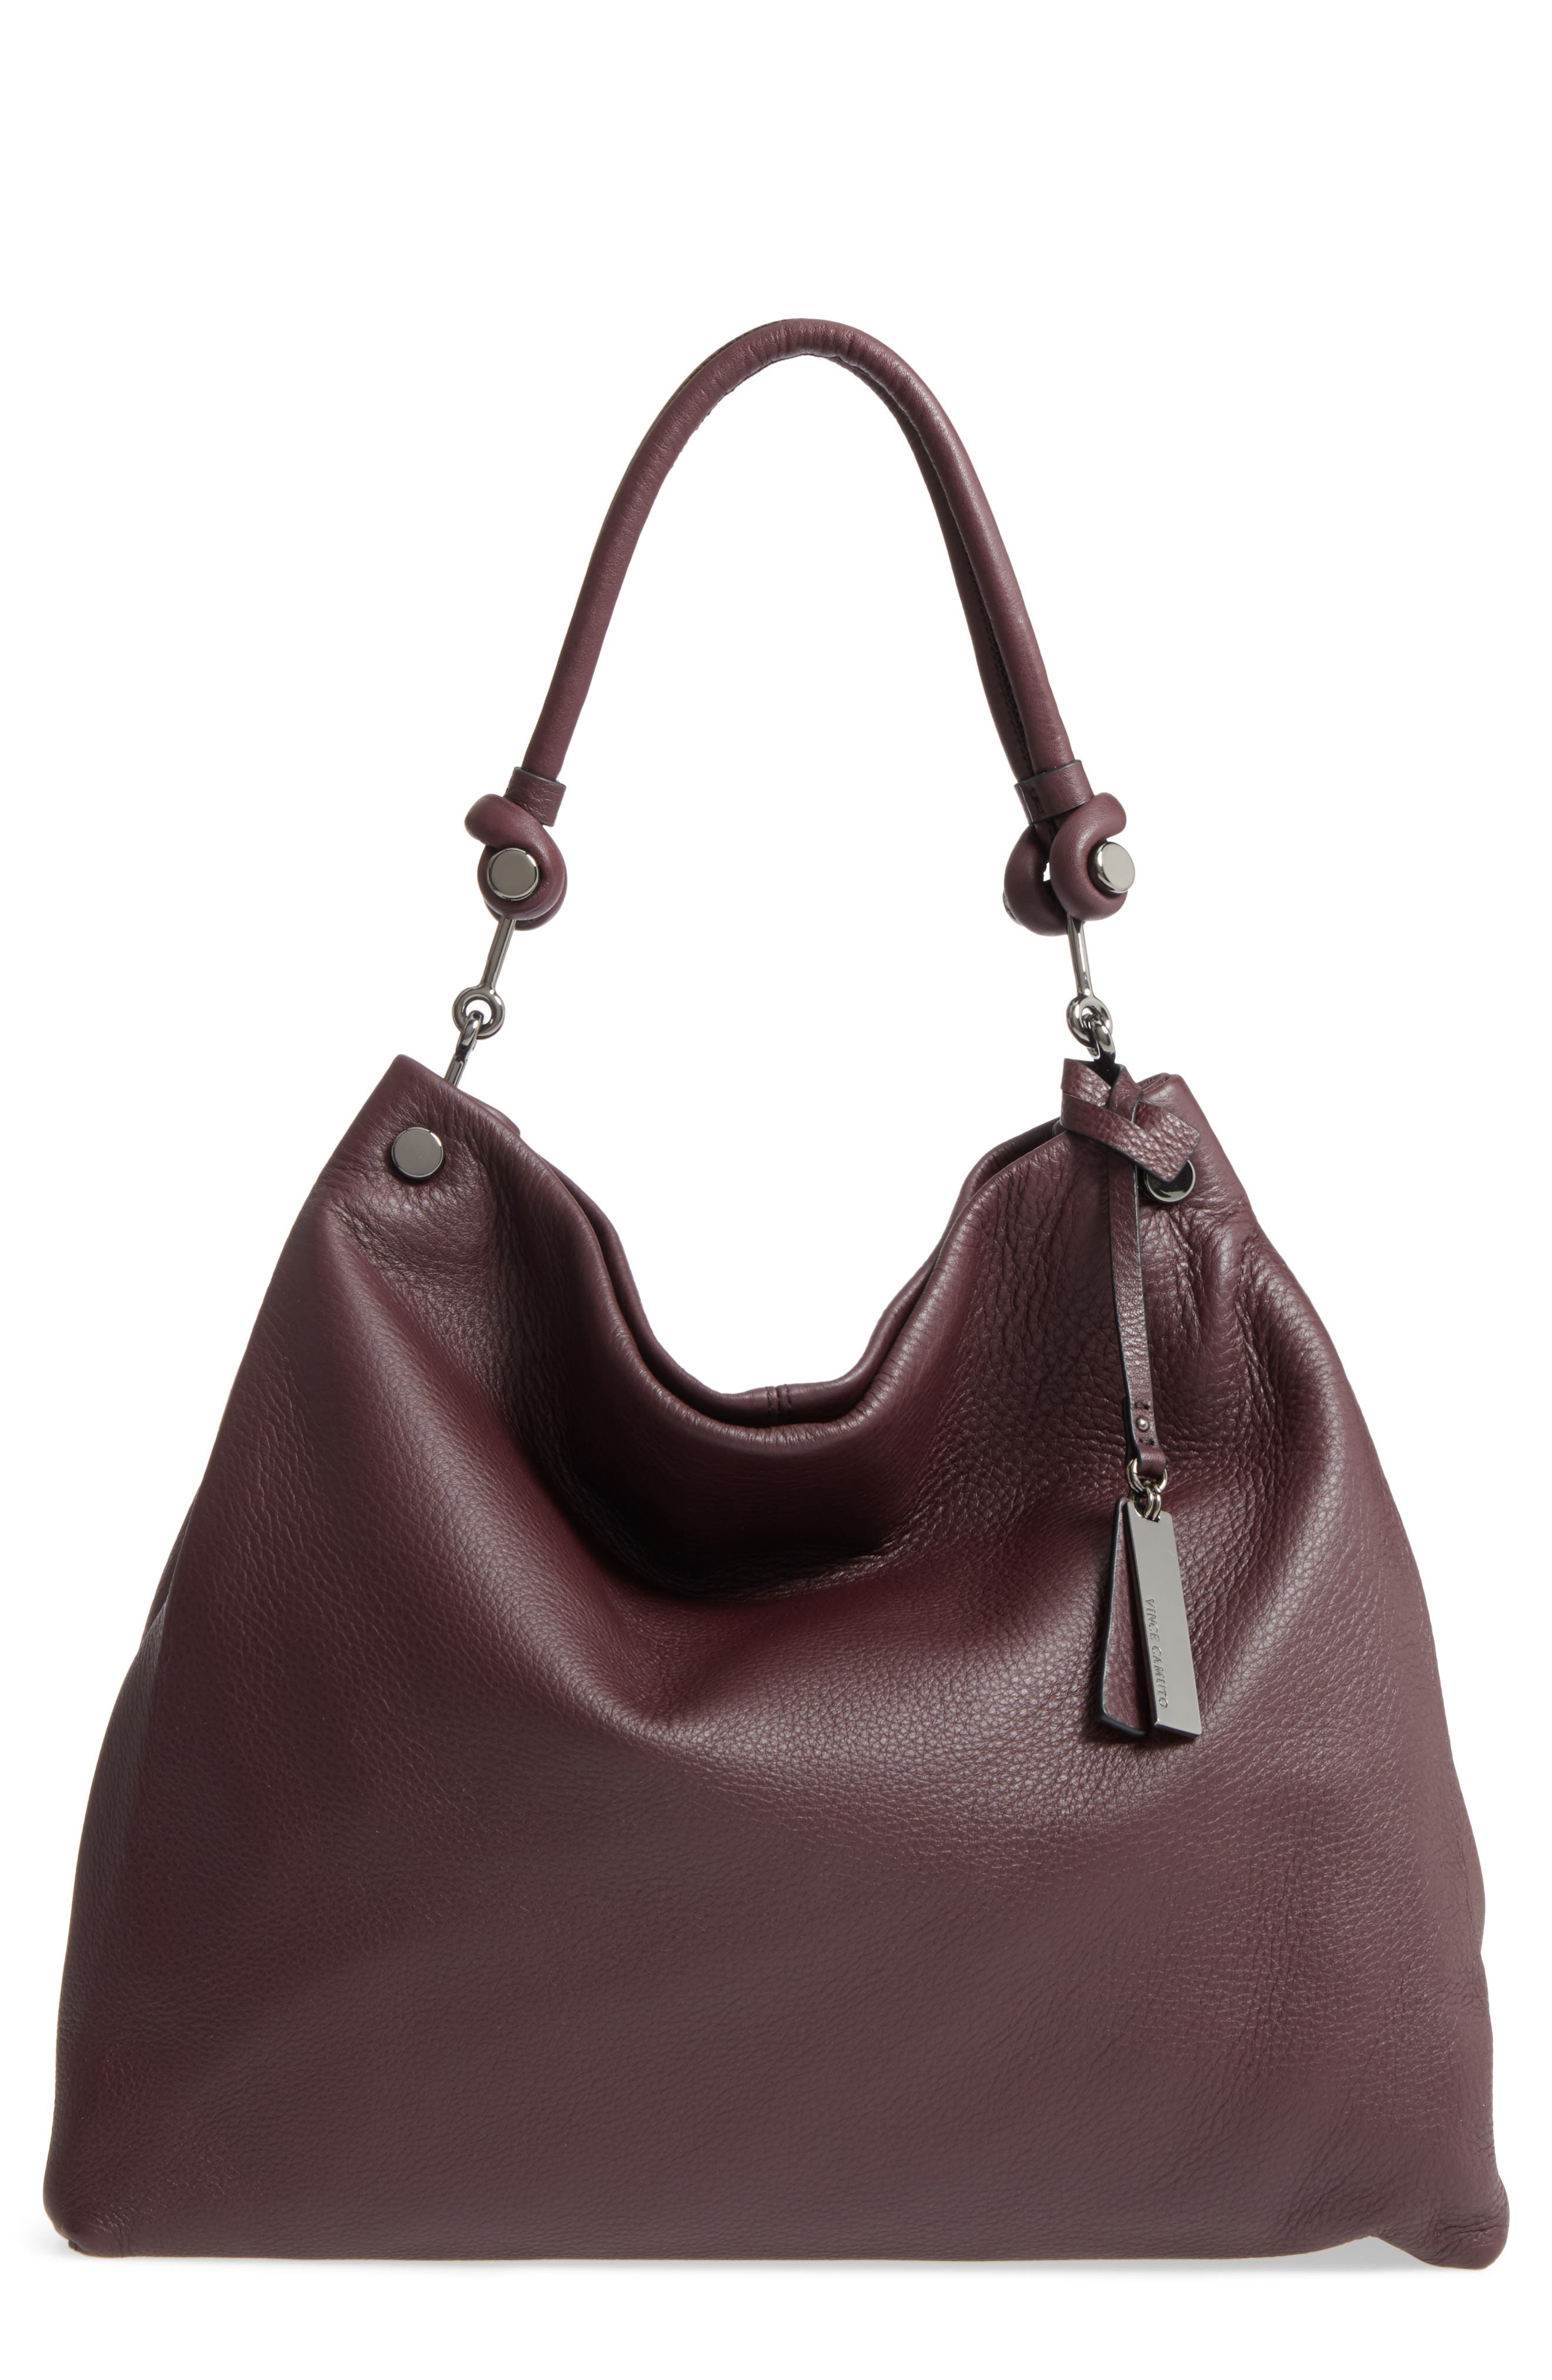 Alternate Image 1 Selected - Vince Camuto 'Ruell' Hobo